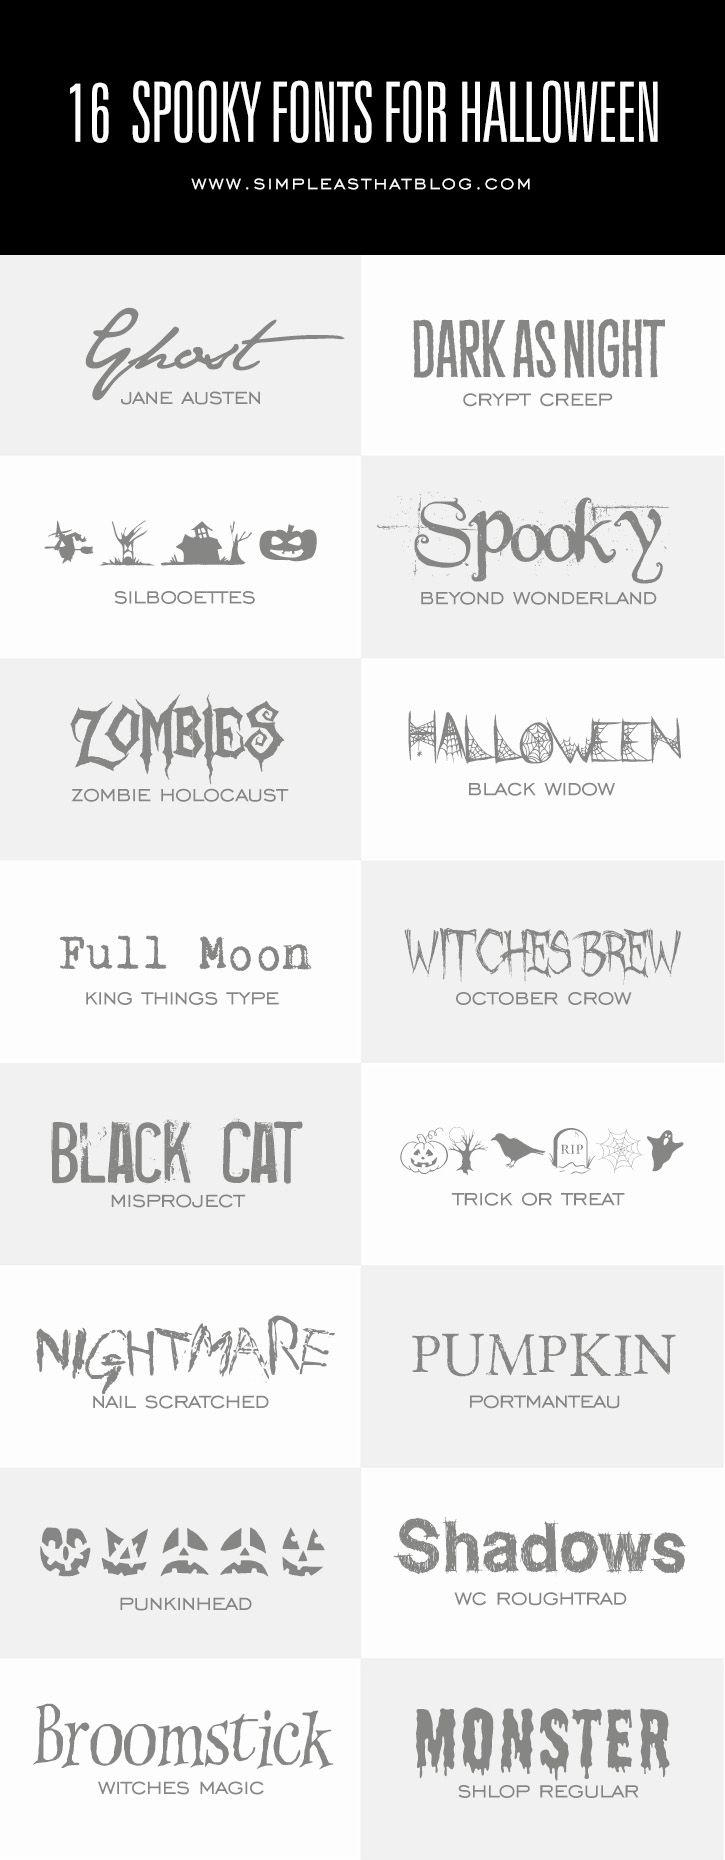 16 Spooky Fonts for Halloween - simple as that